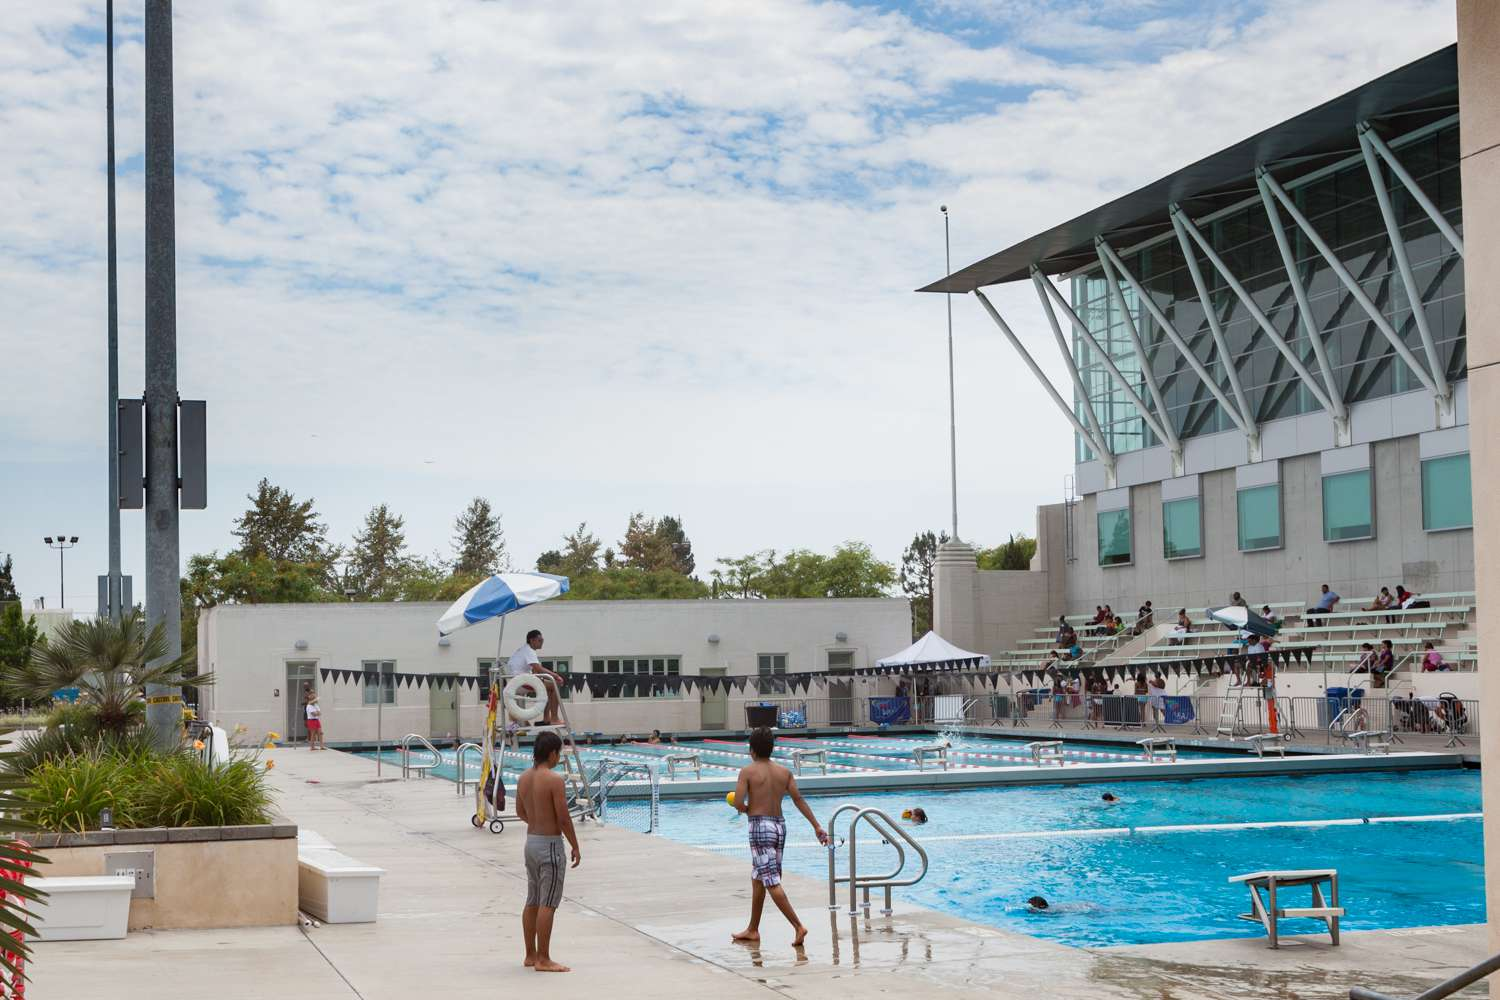 Los Angeles Swimming Stadium at Exposition Park